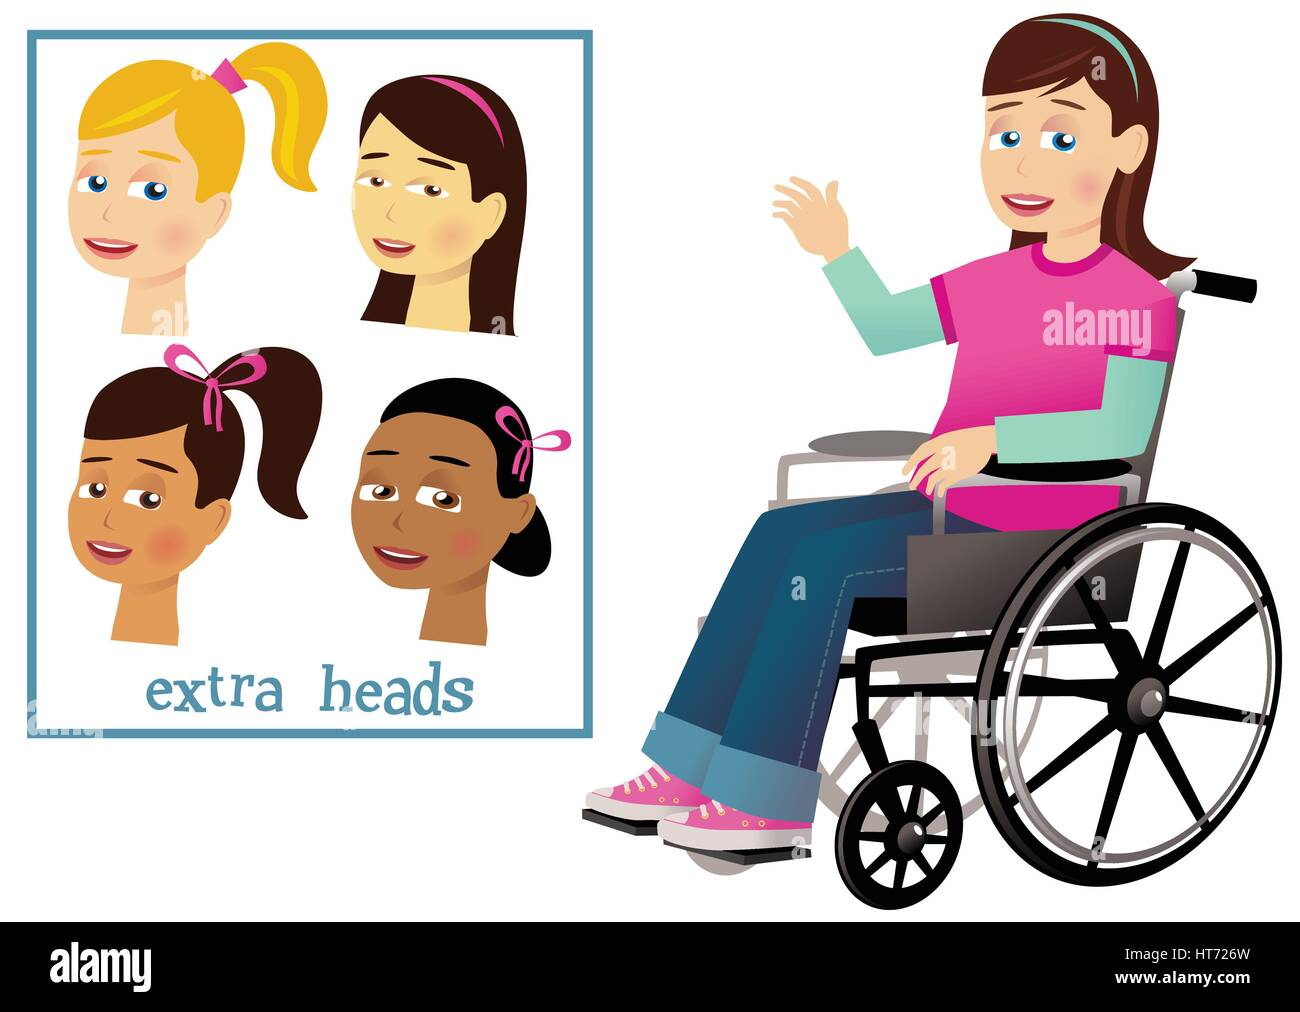 A young girl in a wheelchair, waving.at us. Four spare heads to personalize your image further. - Stock Vector